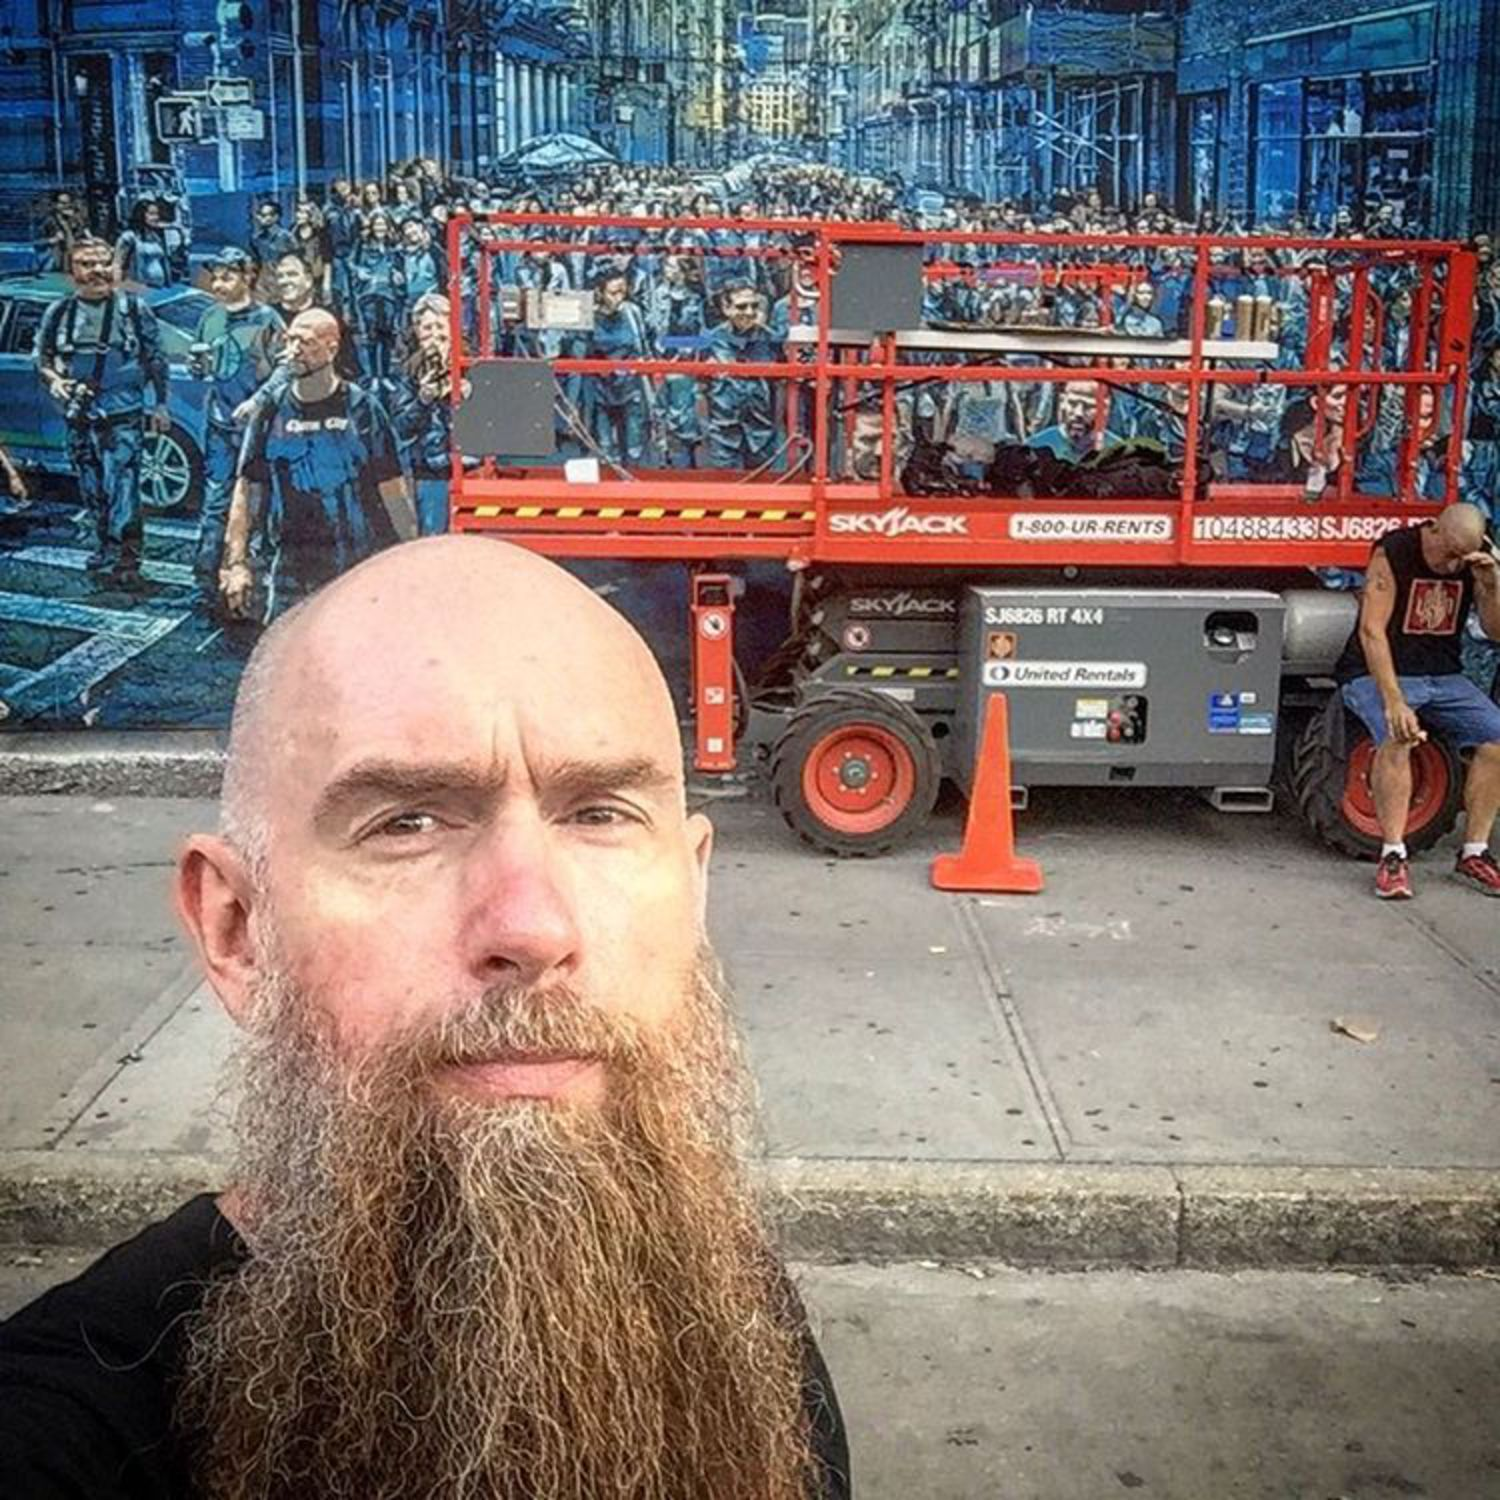 See that man in the background to the right?  That's @clif.king52 and we broke him.  Had a 5am start this morning on the home stretch to the finish today.  Painting the last layer as I type this.  If you're in the hood stop by.  We will probably finish up around 2pm today if all goes well.  #cantstopwontstop #nevernotworking #bowerymural #bowerywall